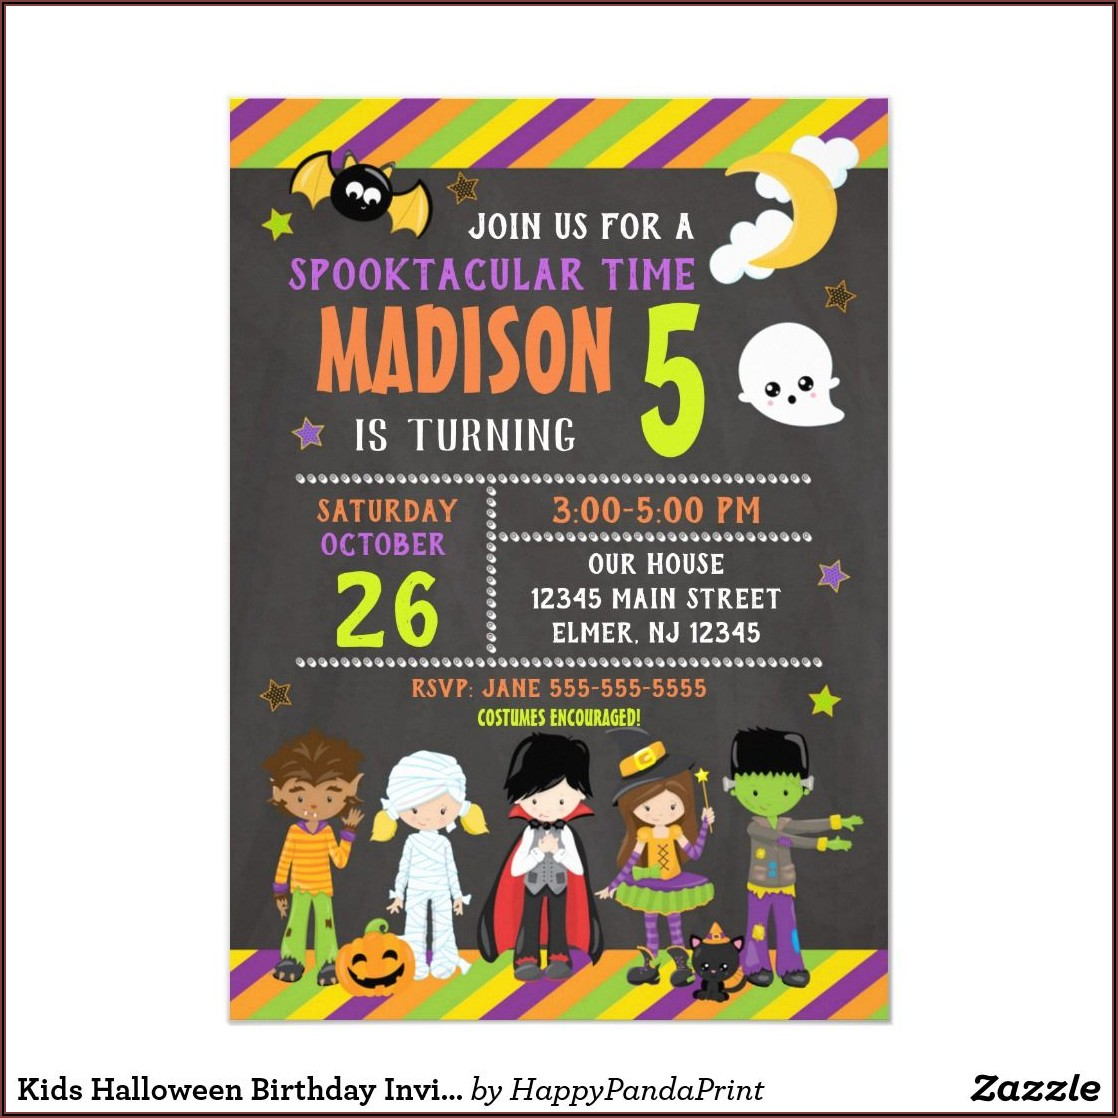 Puppy Dog Pals Invitations Zazzle